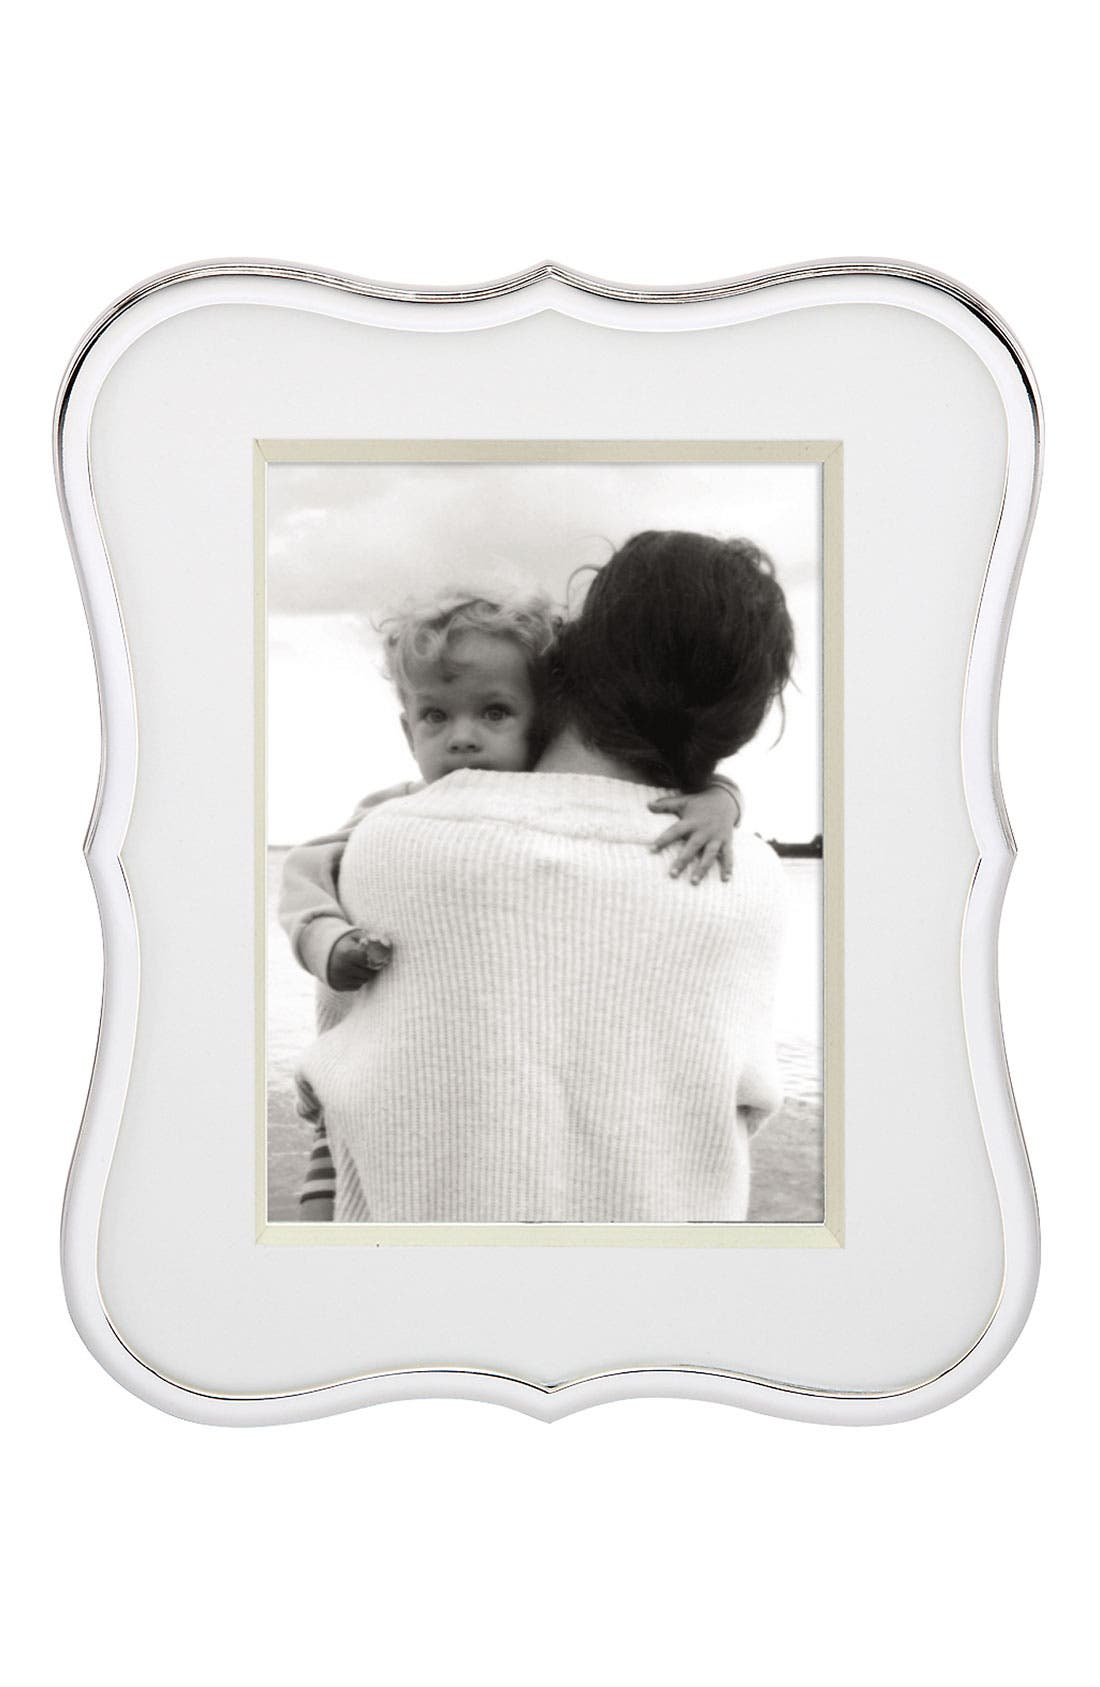 crown point picture frame,                             Alternate thumbnail 3, color,                             NO COLOR